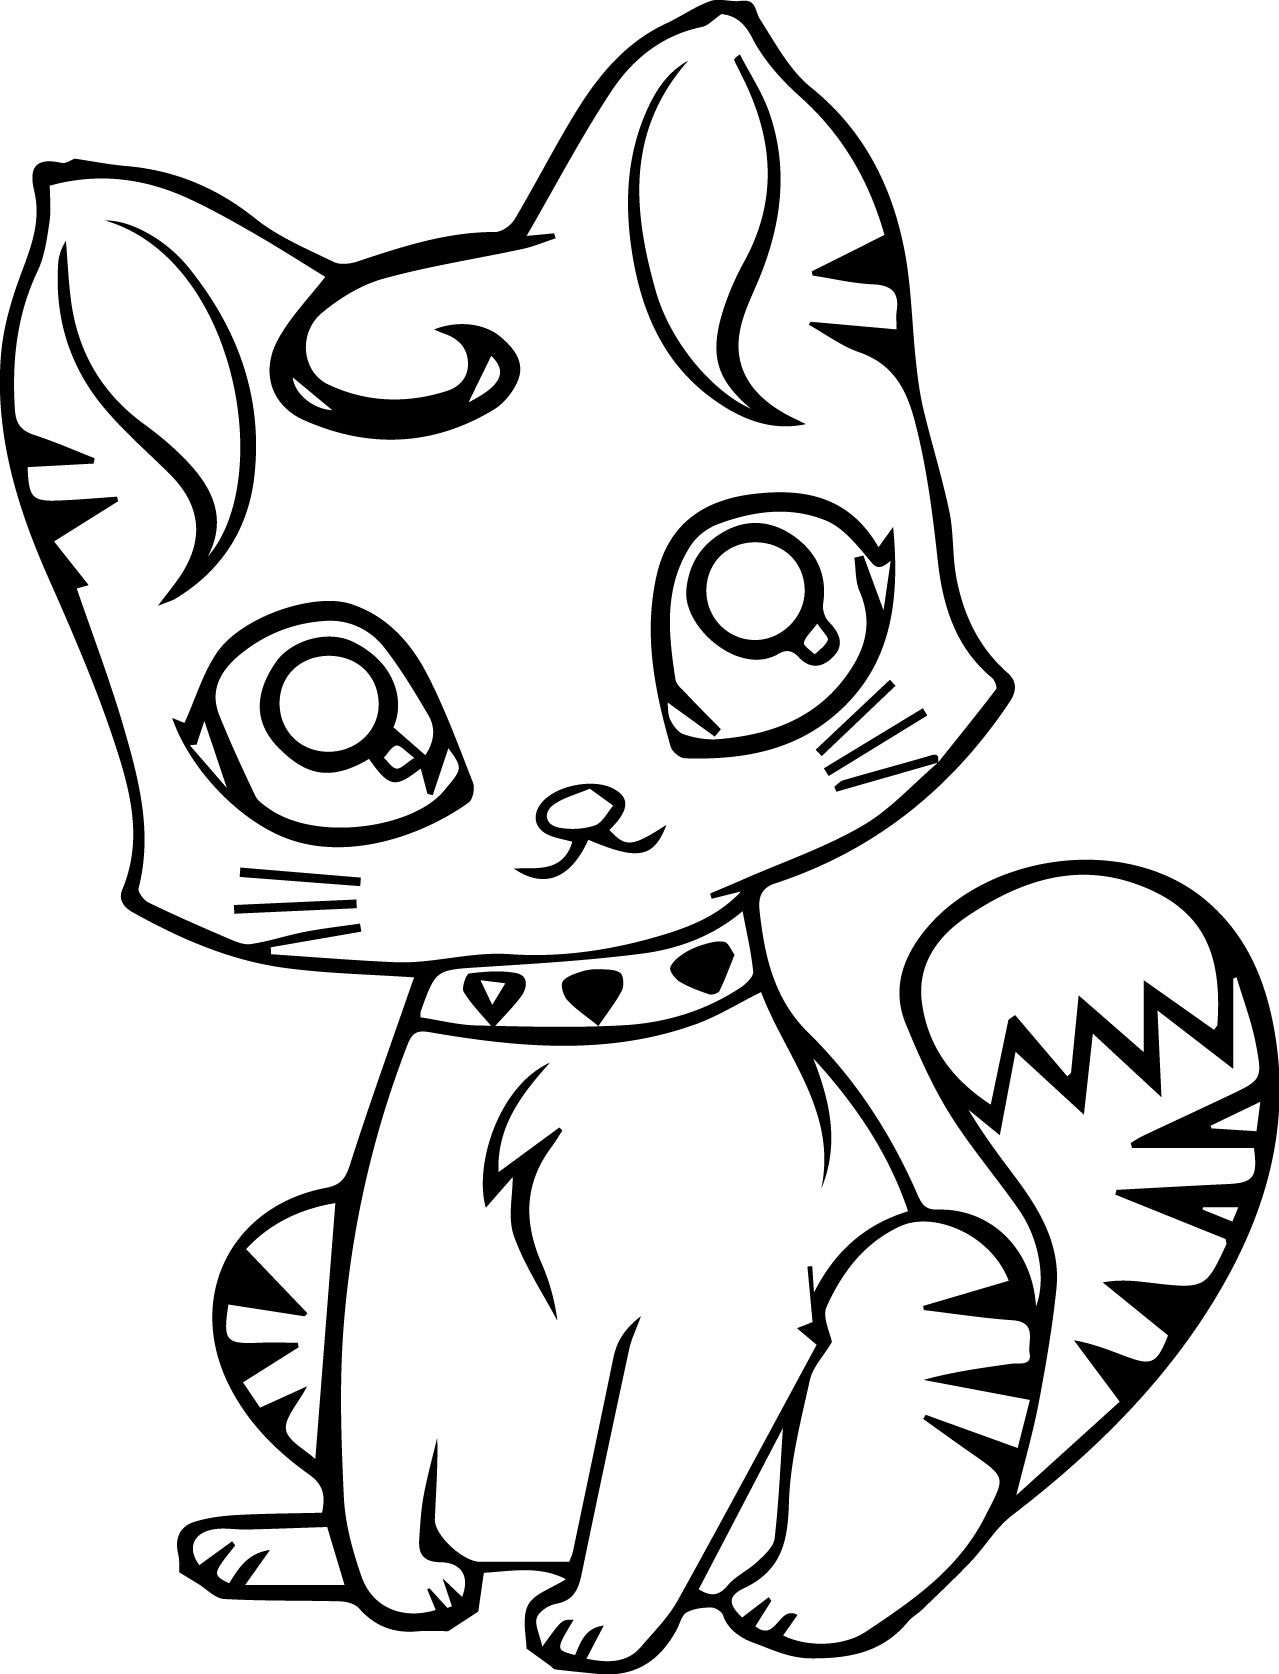 kitten coloring pictures printable cute cat coloring pages to download and print for free printable coloring kitten pictures